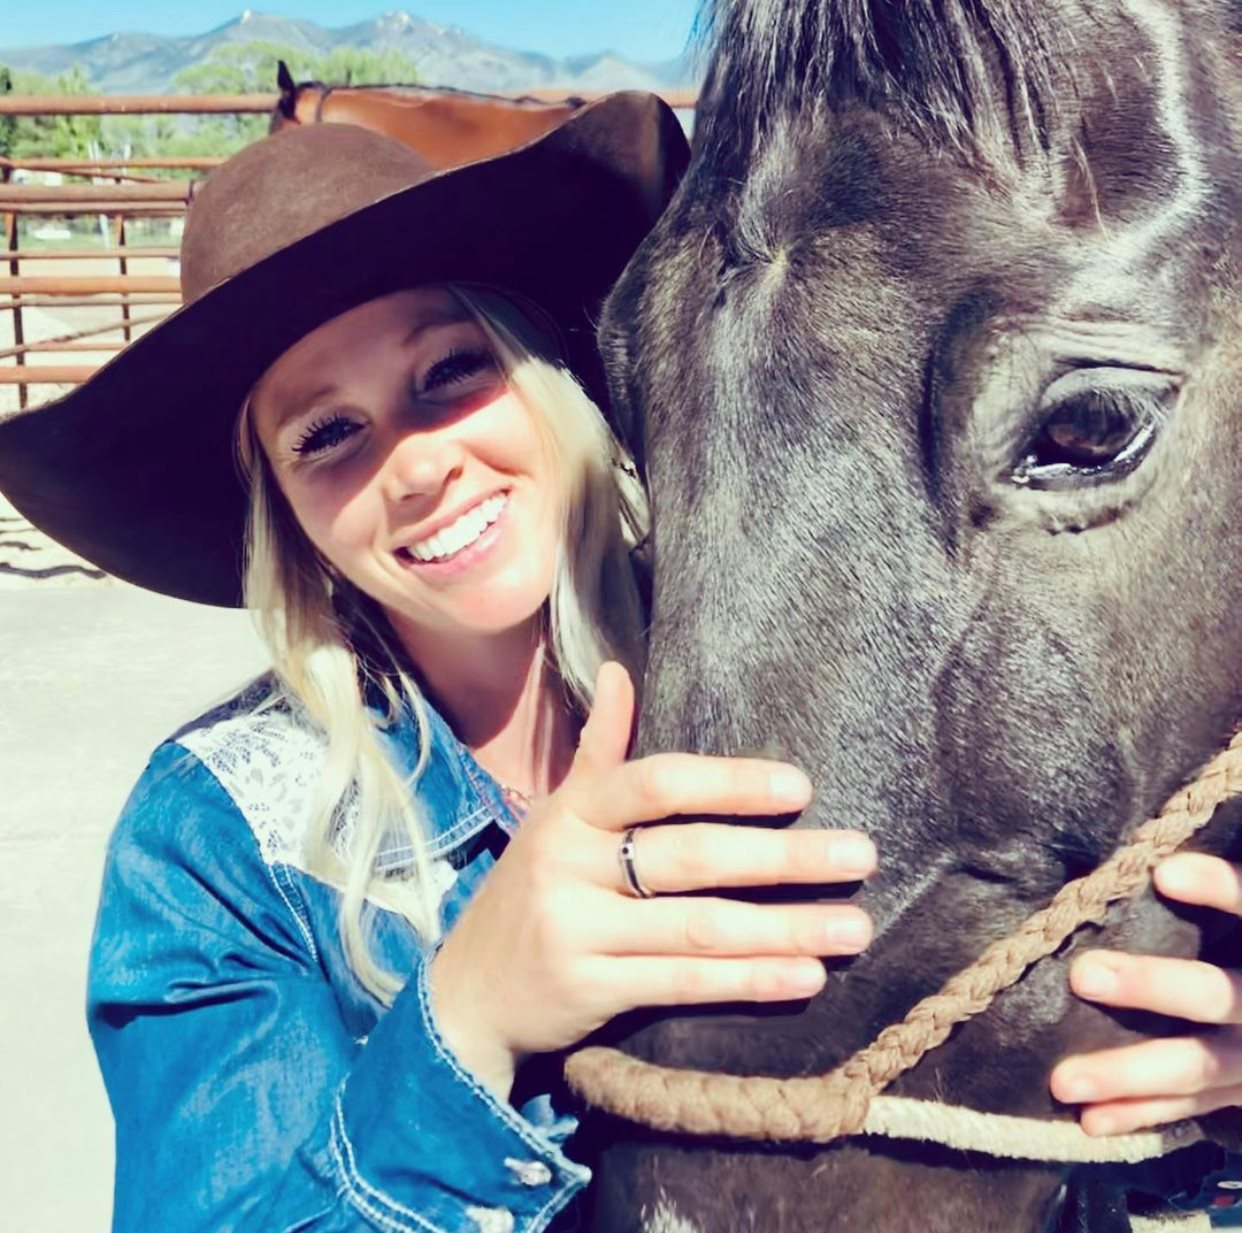 amberley snyder, power,  blaze ring, barrel racing, amberley snyder and power